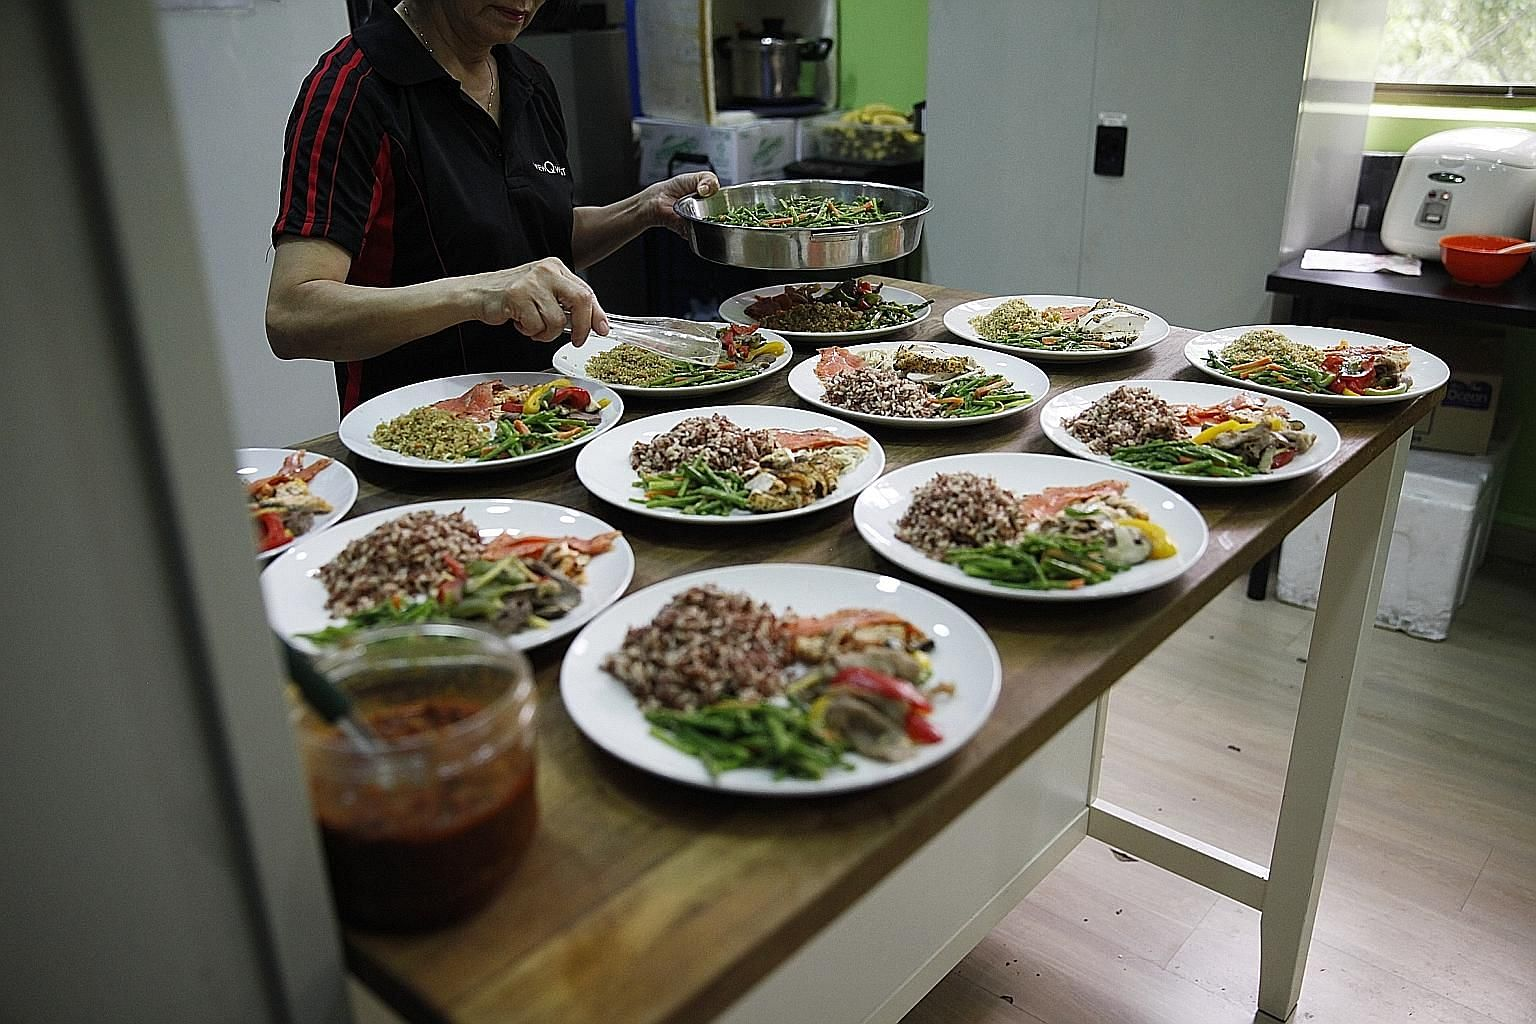 Lunch is a wholesome affair and free at the top level of ViewQwest's five-storey shophouse office in Bukit Timah Road.